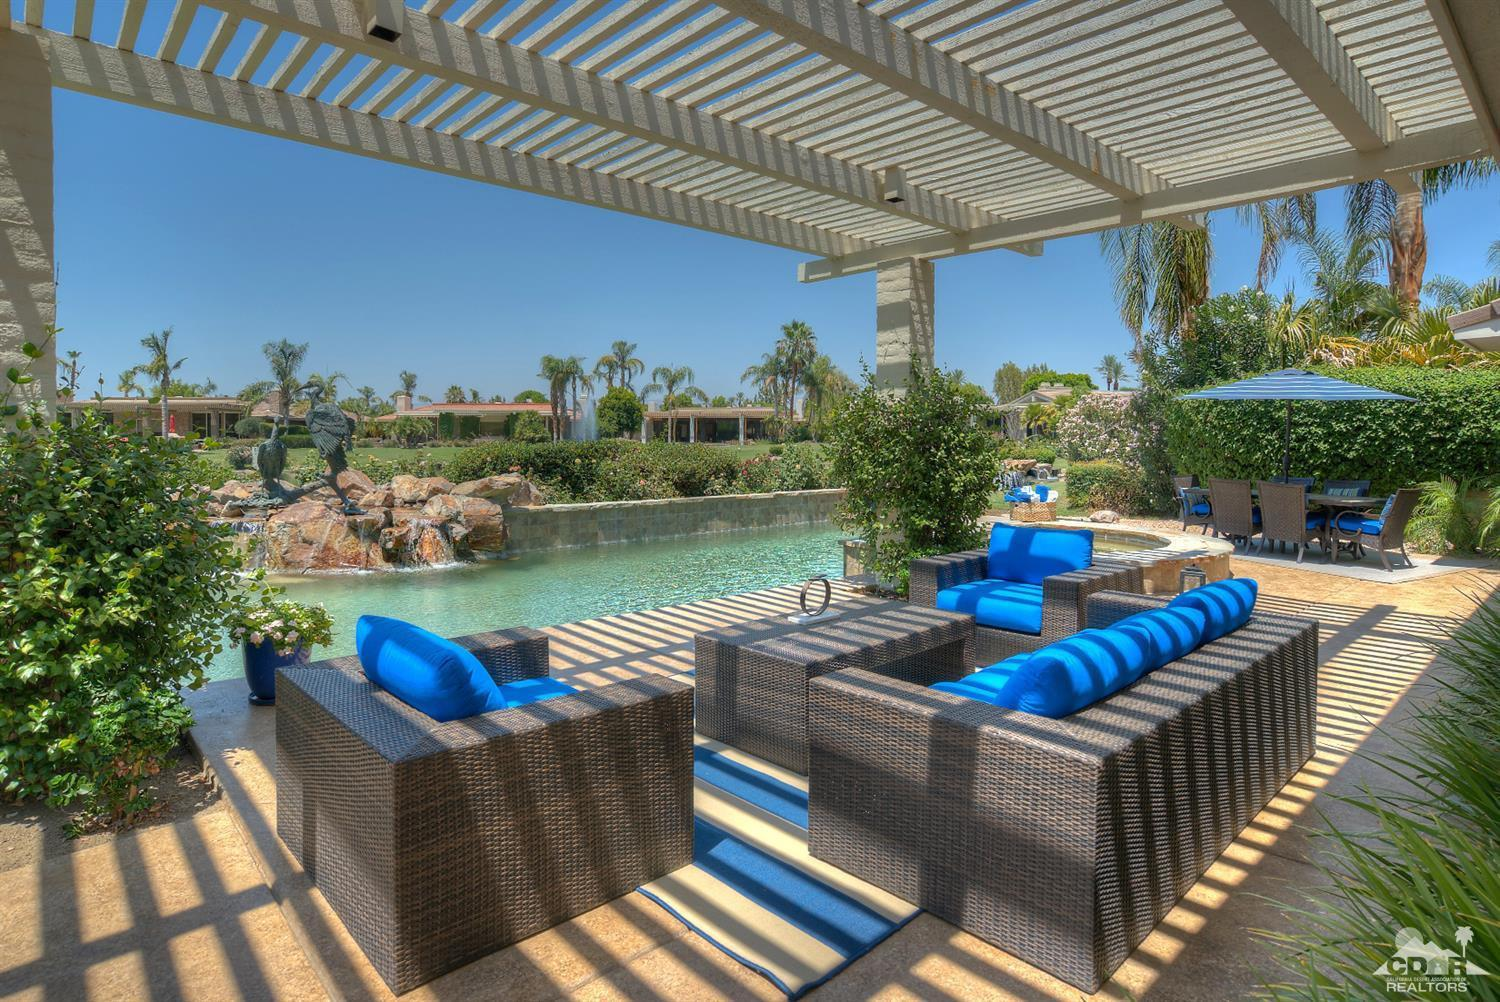 46 Fincher Way, Rancho Mirage, CA 92270